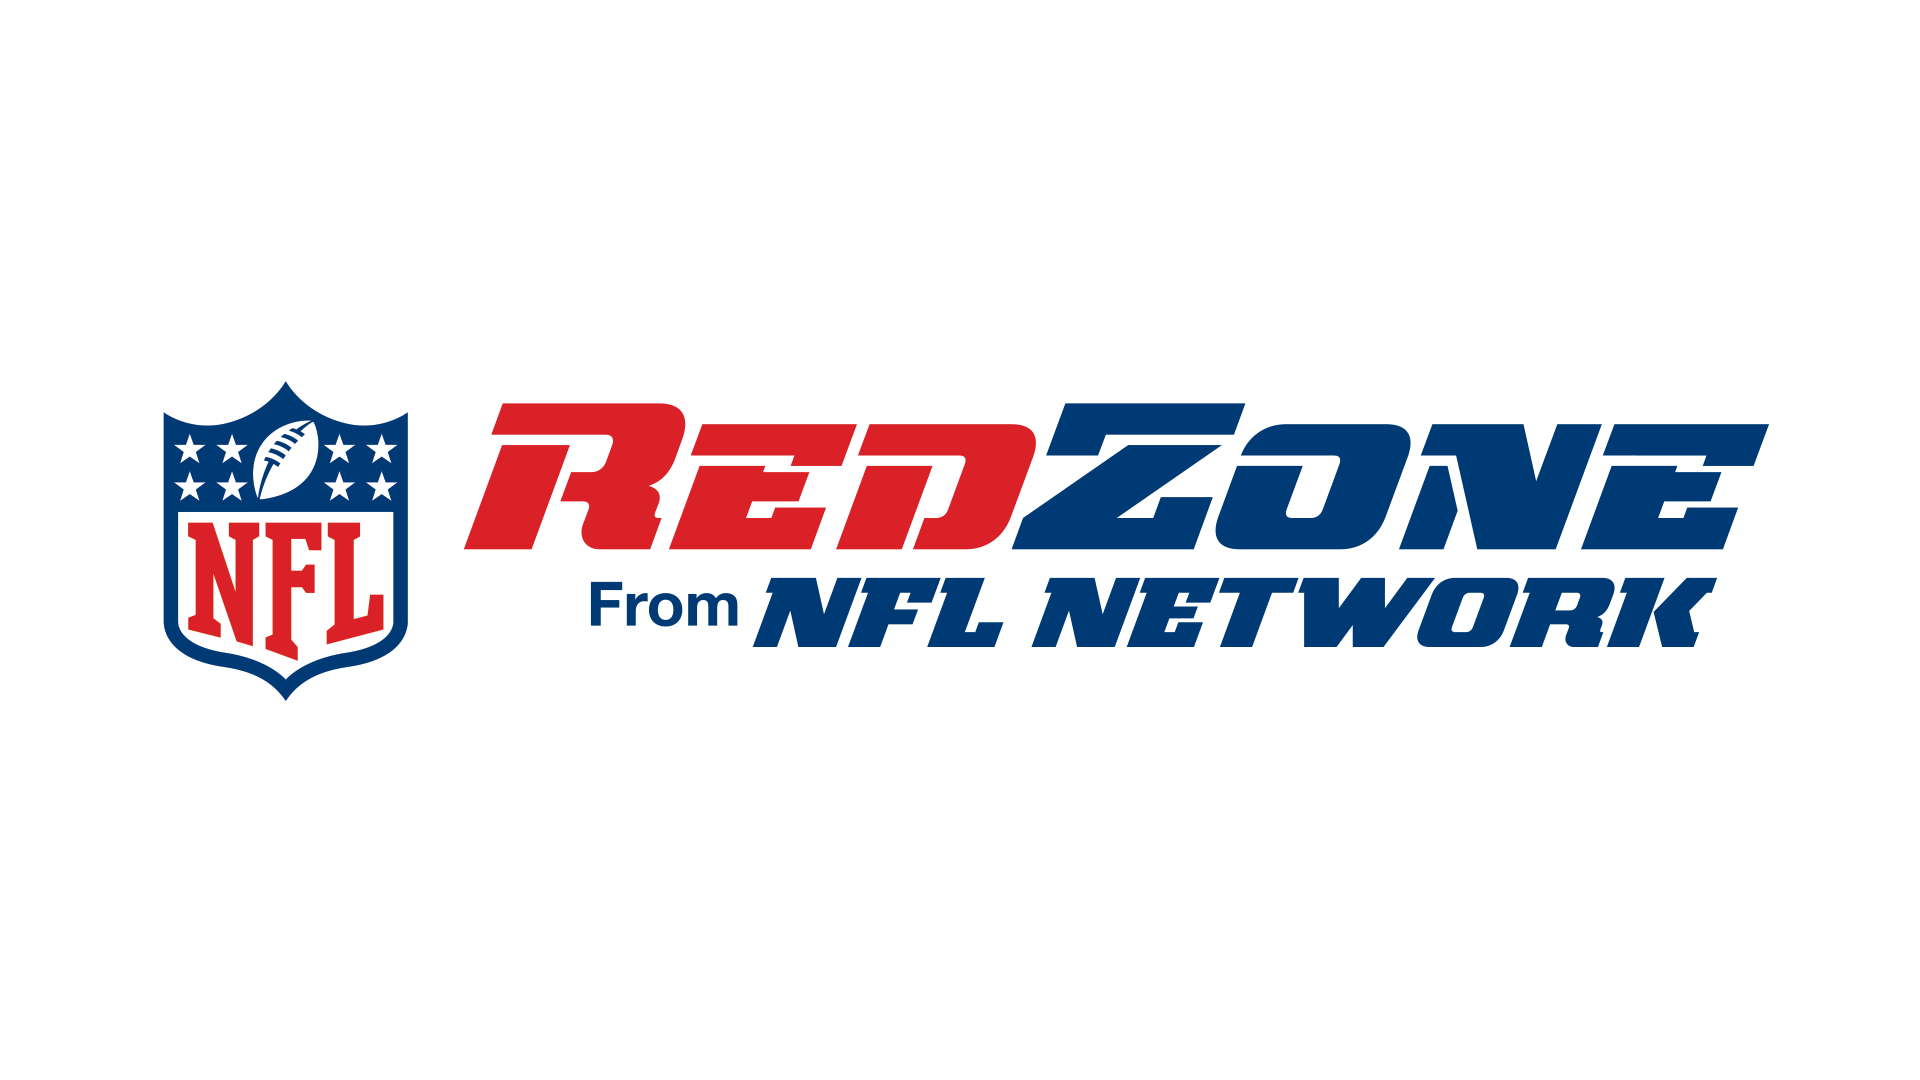 Watch Nfl Redzone Live Stream On Pc Mobile And Tablet Enjoy Redzone Hanson Streaming That Is Available On Nflbite Nfl Redzone Nfl News Nfl Network